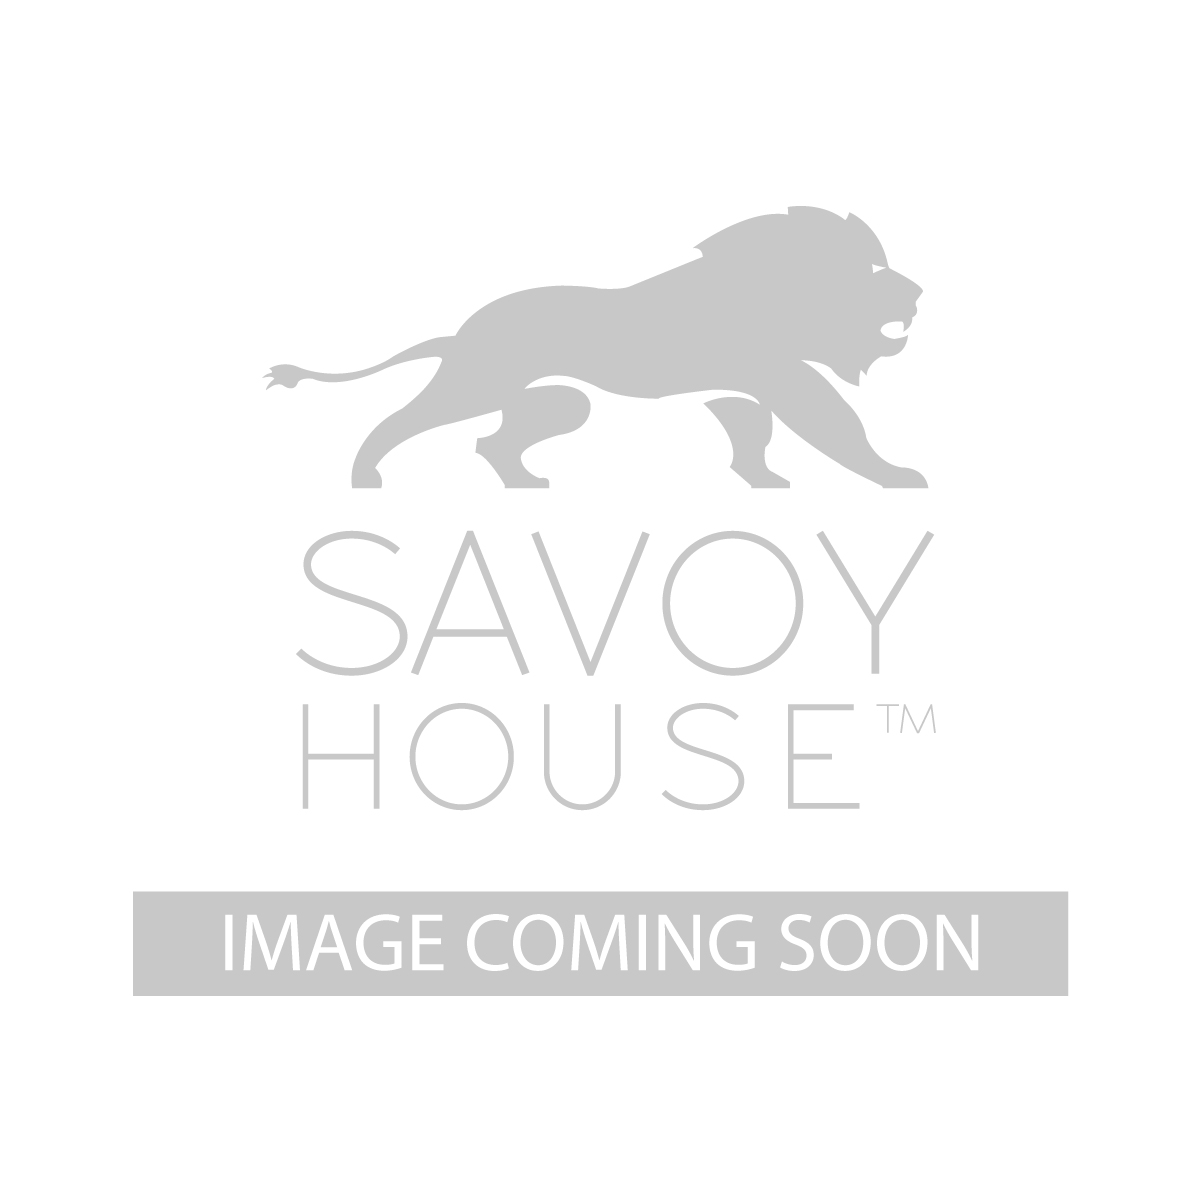 Large Foyer Lantern : Penrose light large foyer lantern by savoy